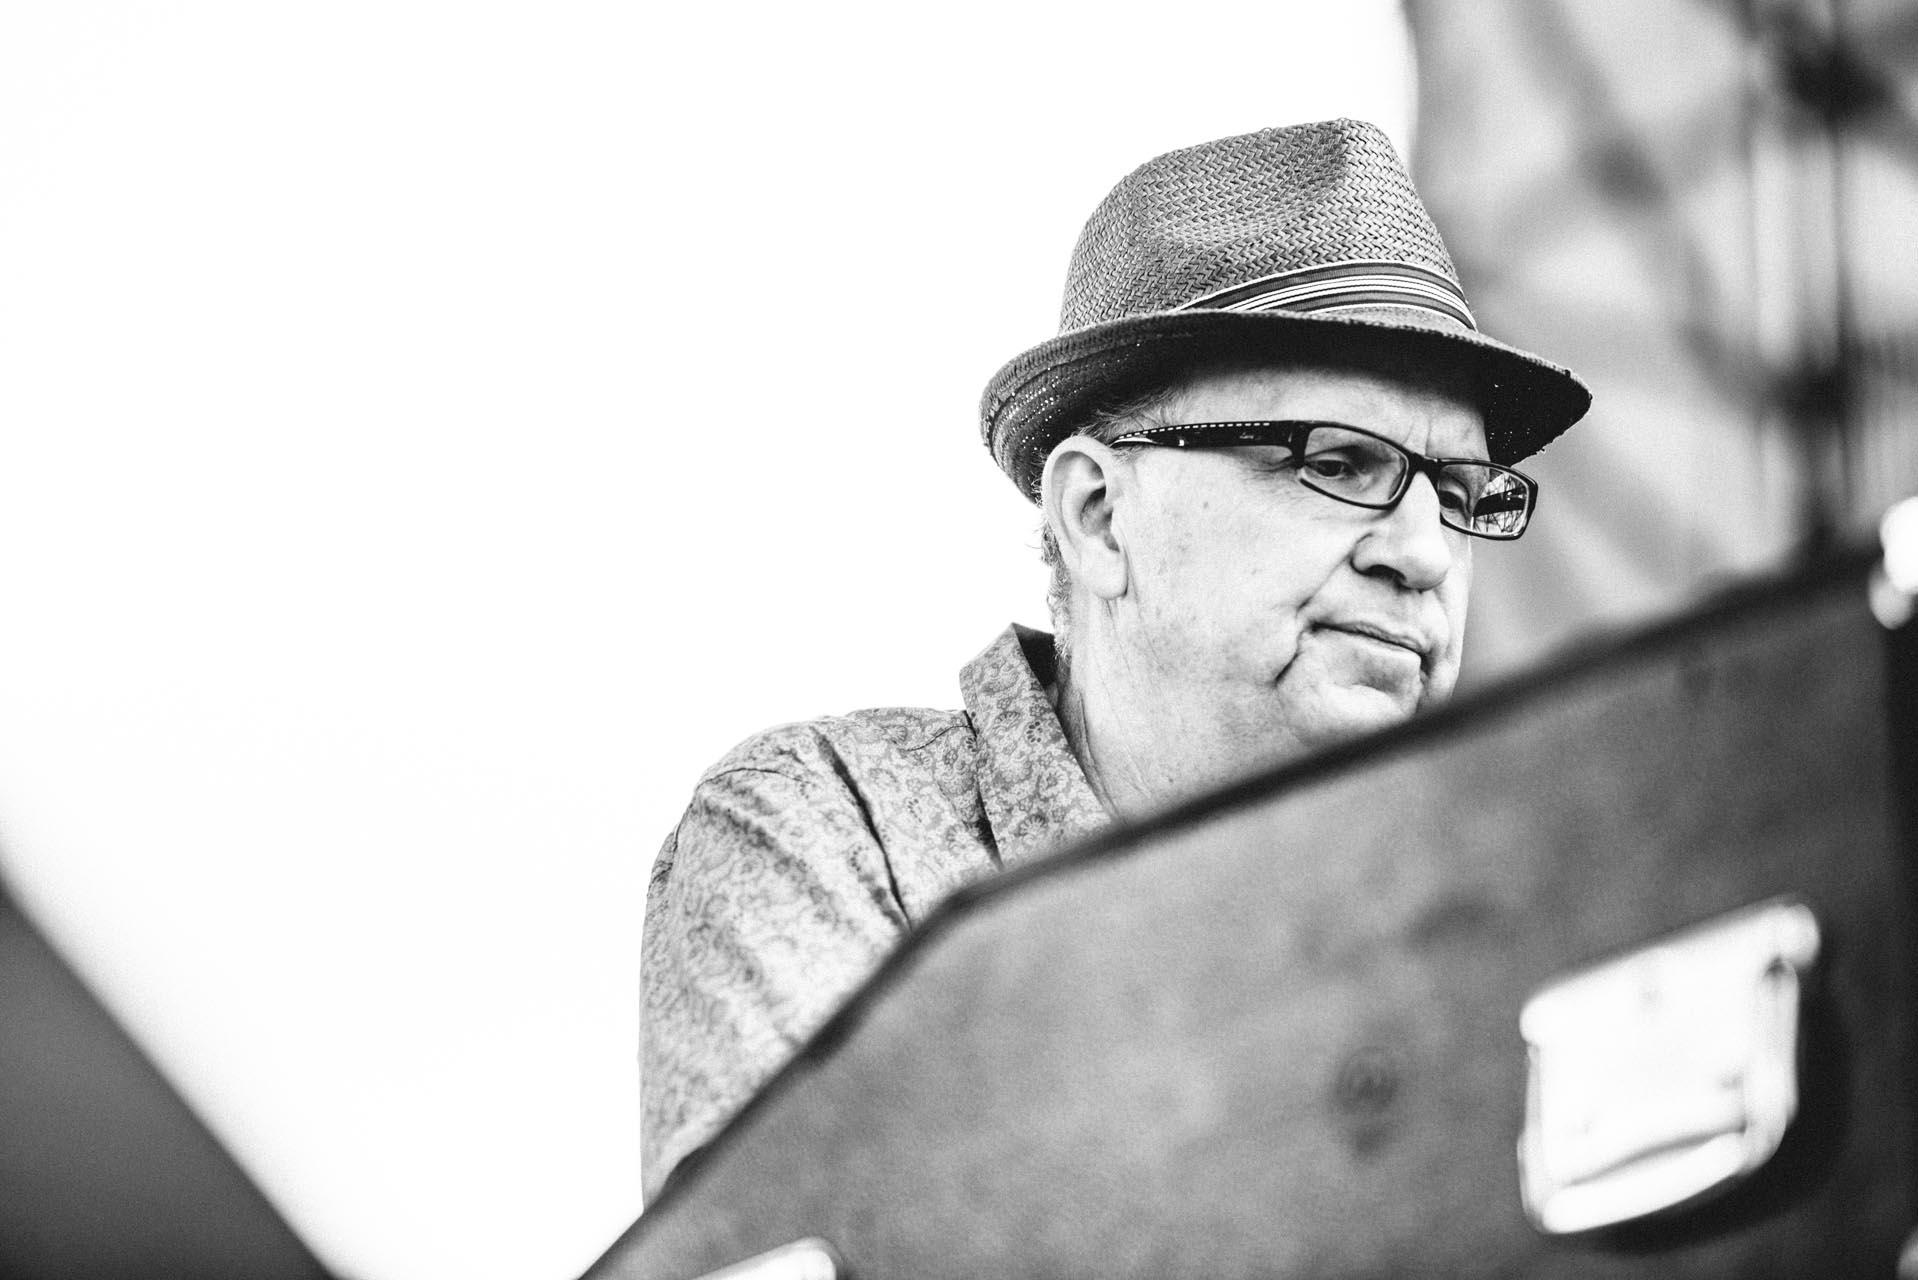 robert_cray_live_the_lawn_indianapolis_2013-23